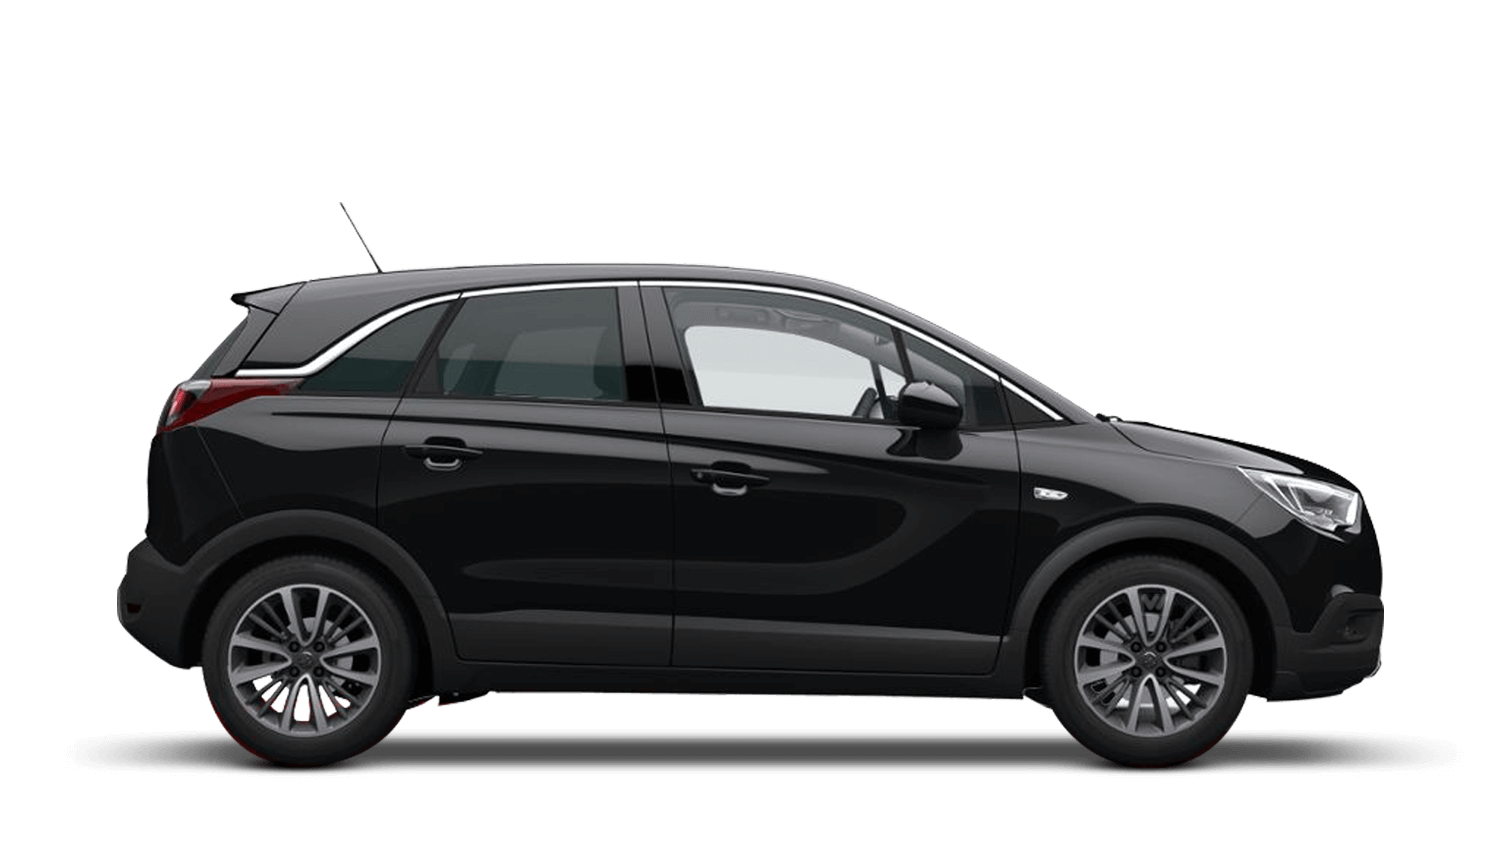 Diamond Black (Metallic) Vauxhall Crossland X